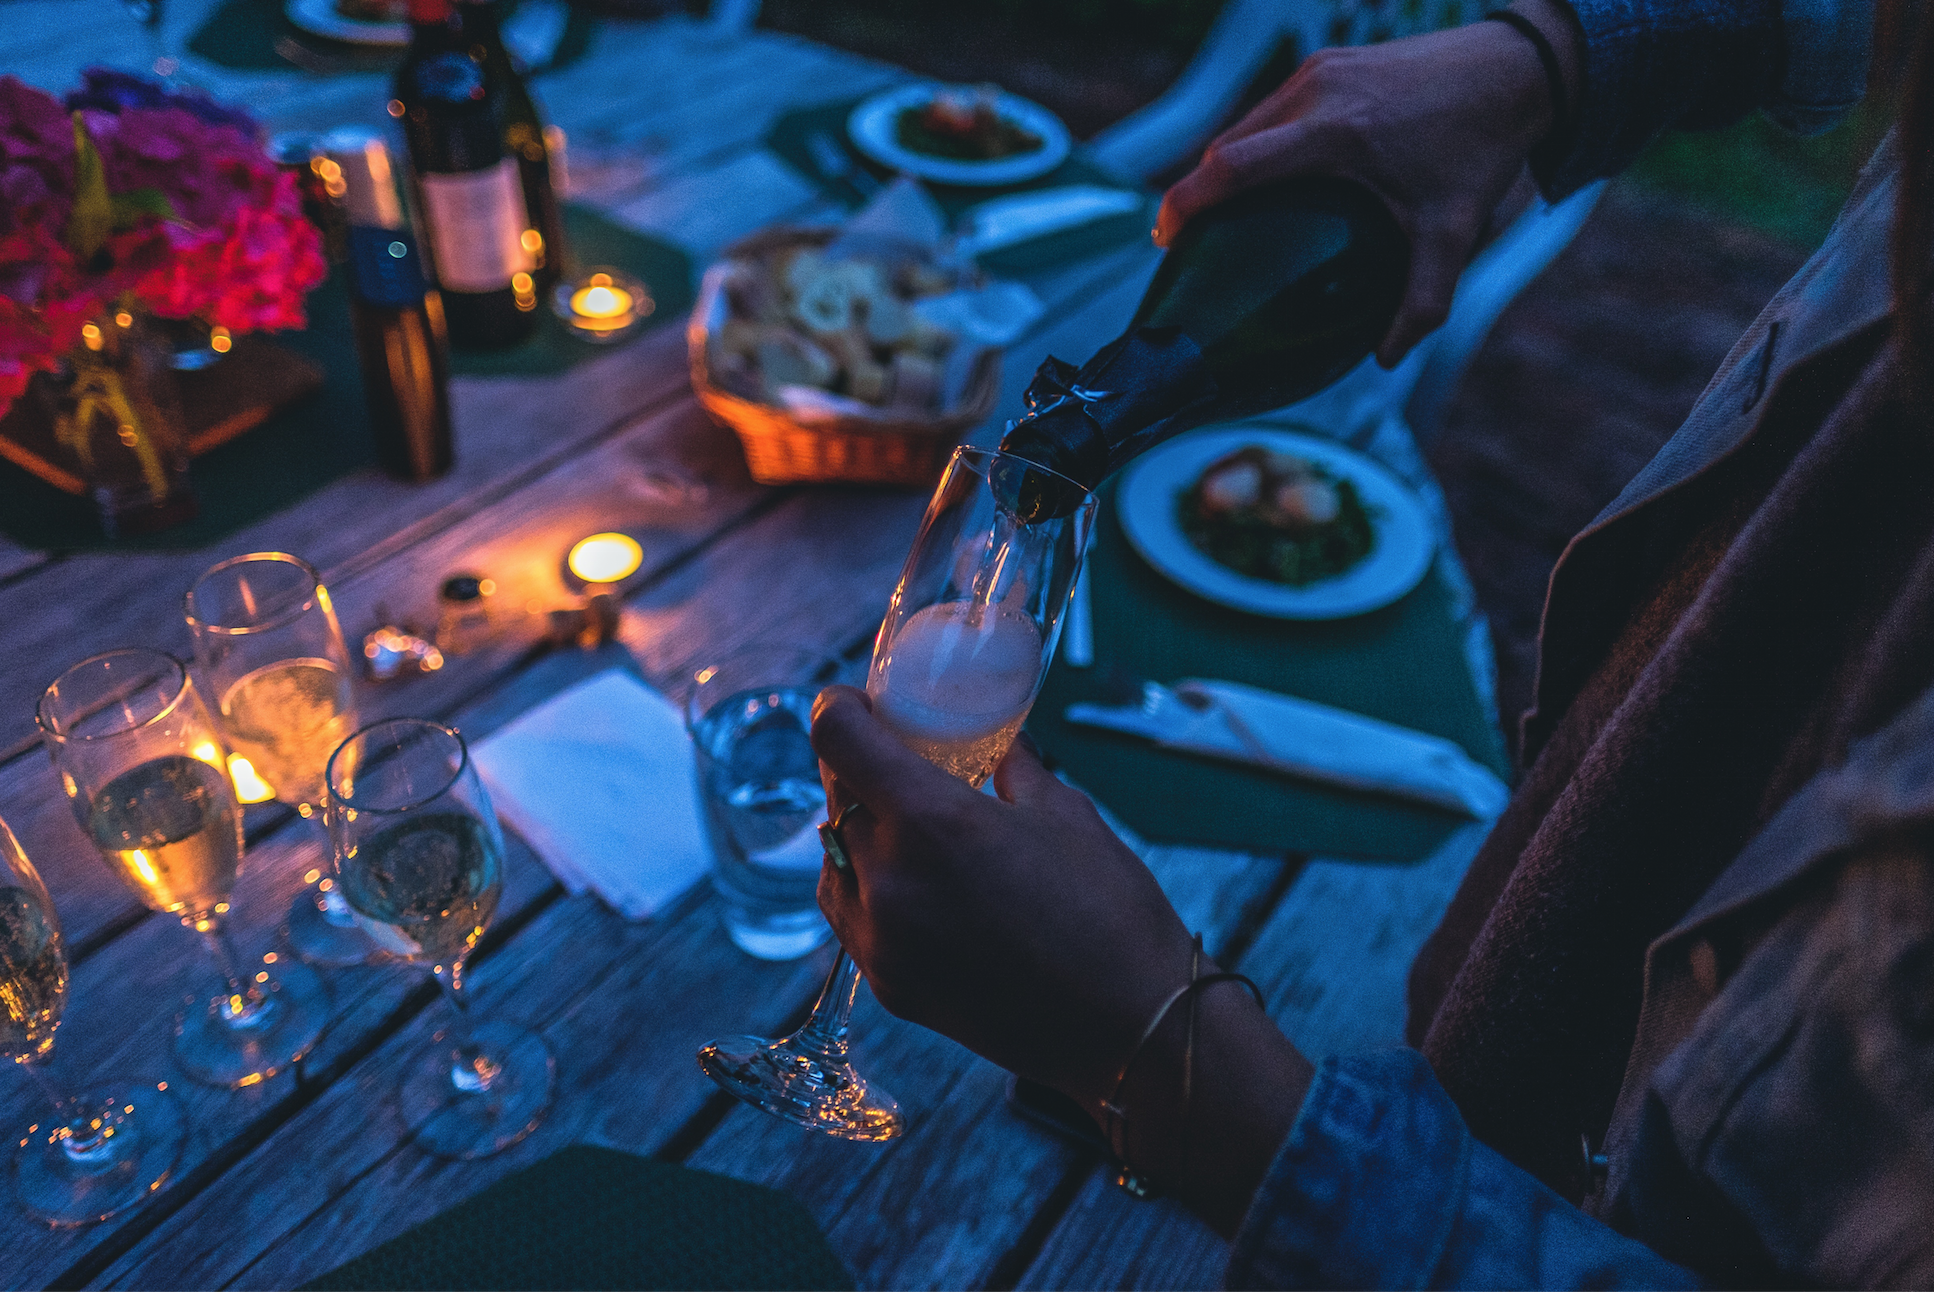 Entertainment Ideas For Your Next Dinner Party